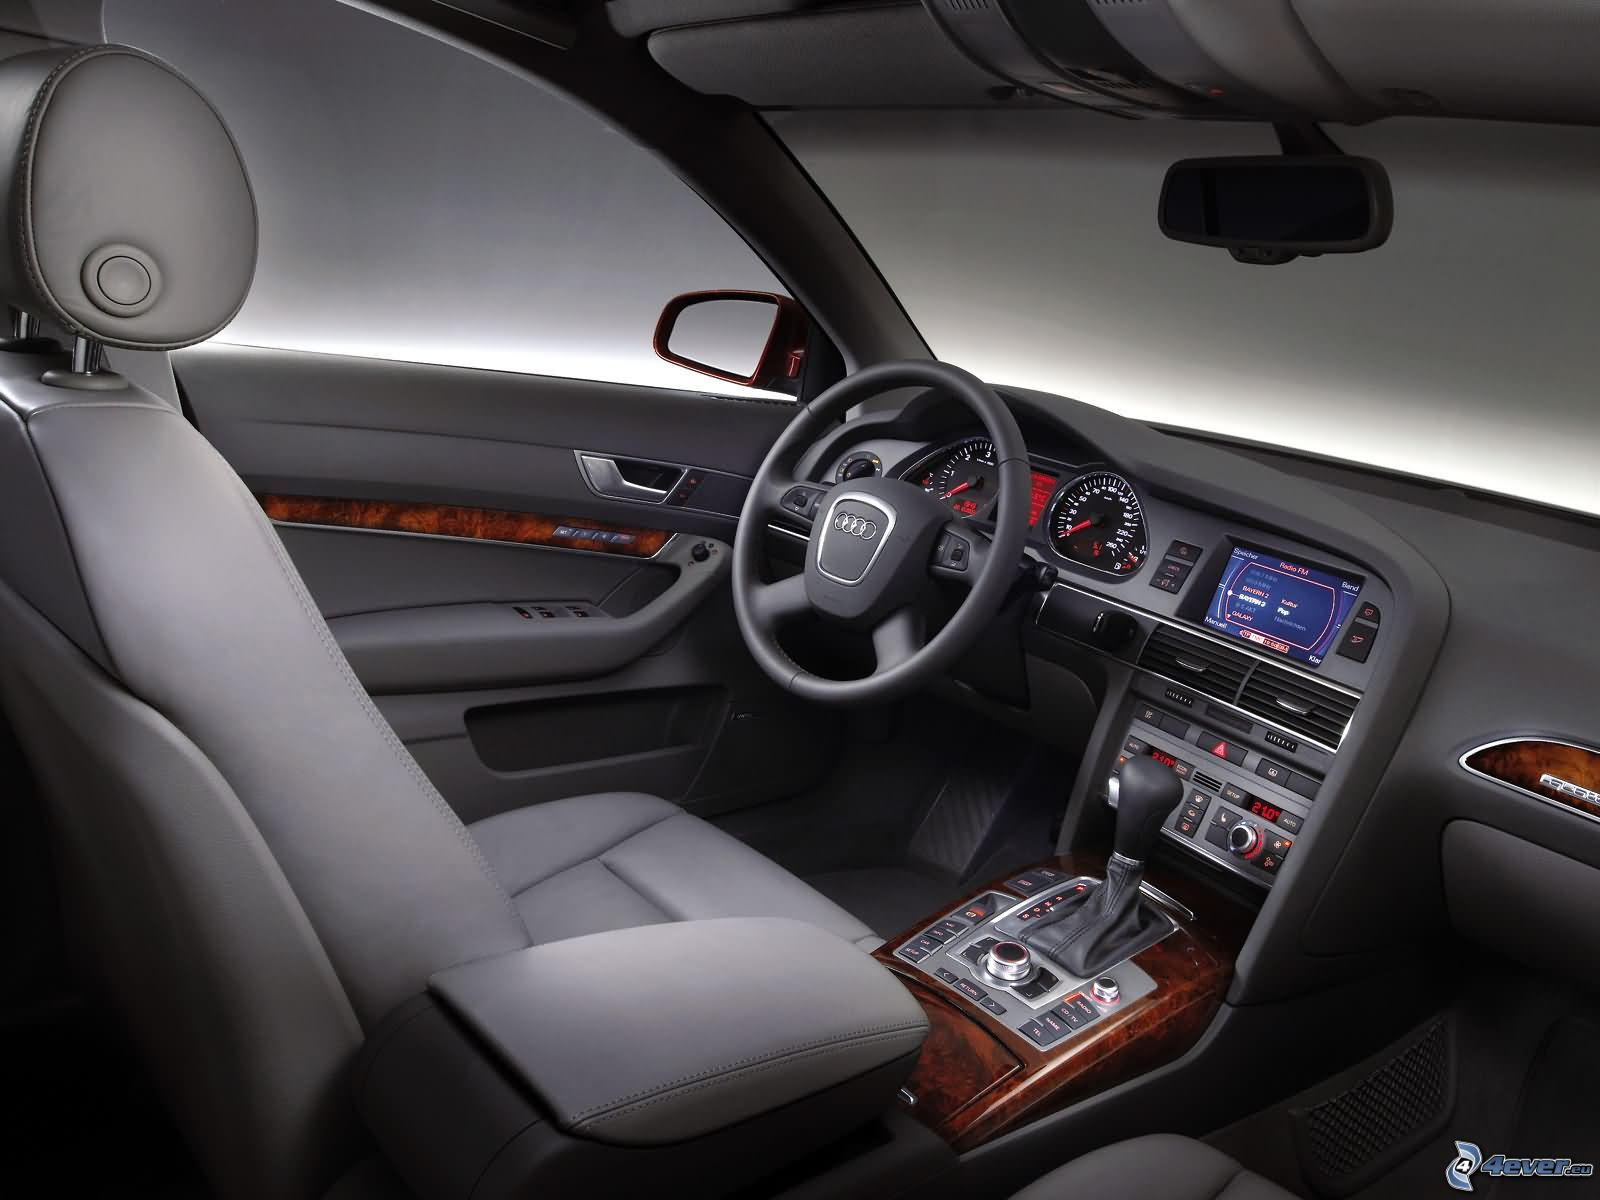 Interieur des audi a6 for Interieur audi a6